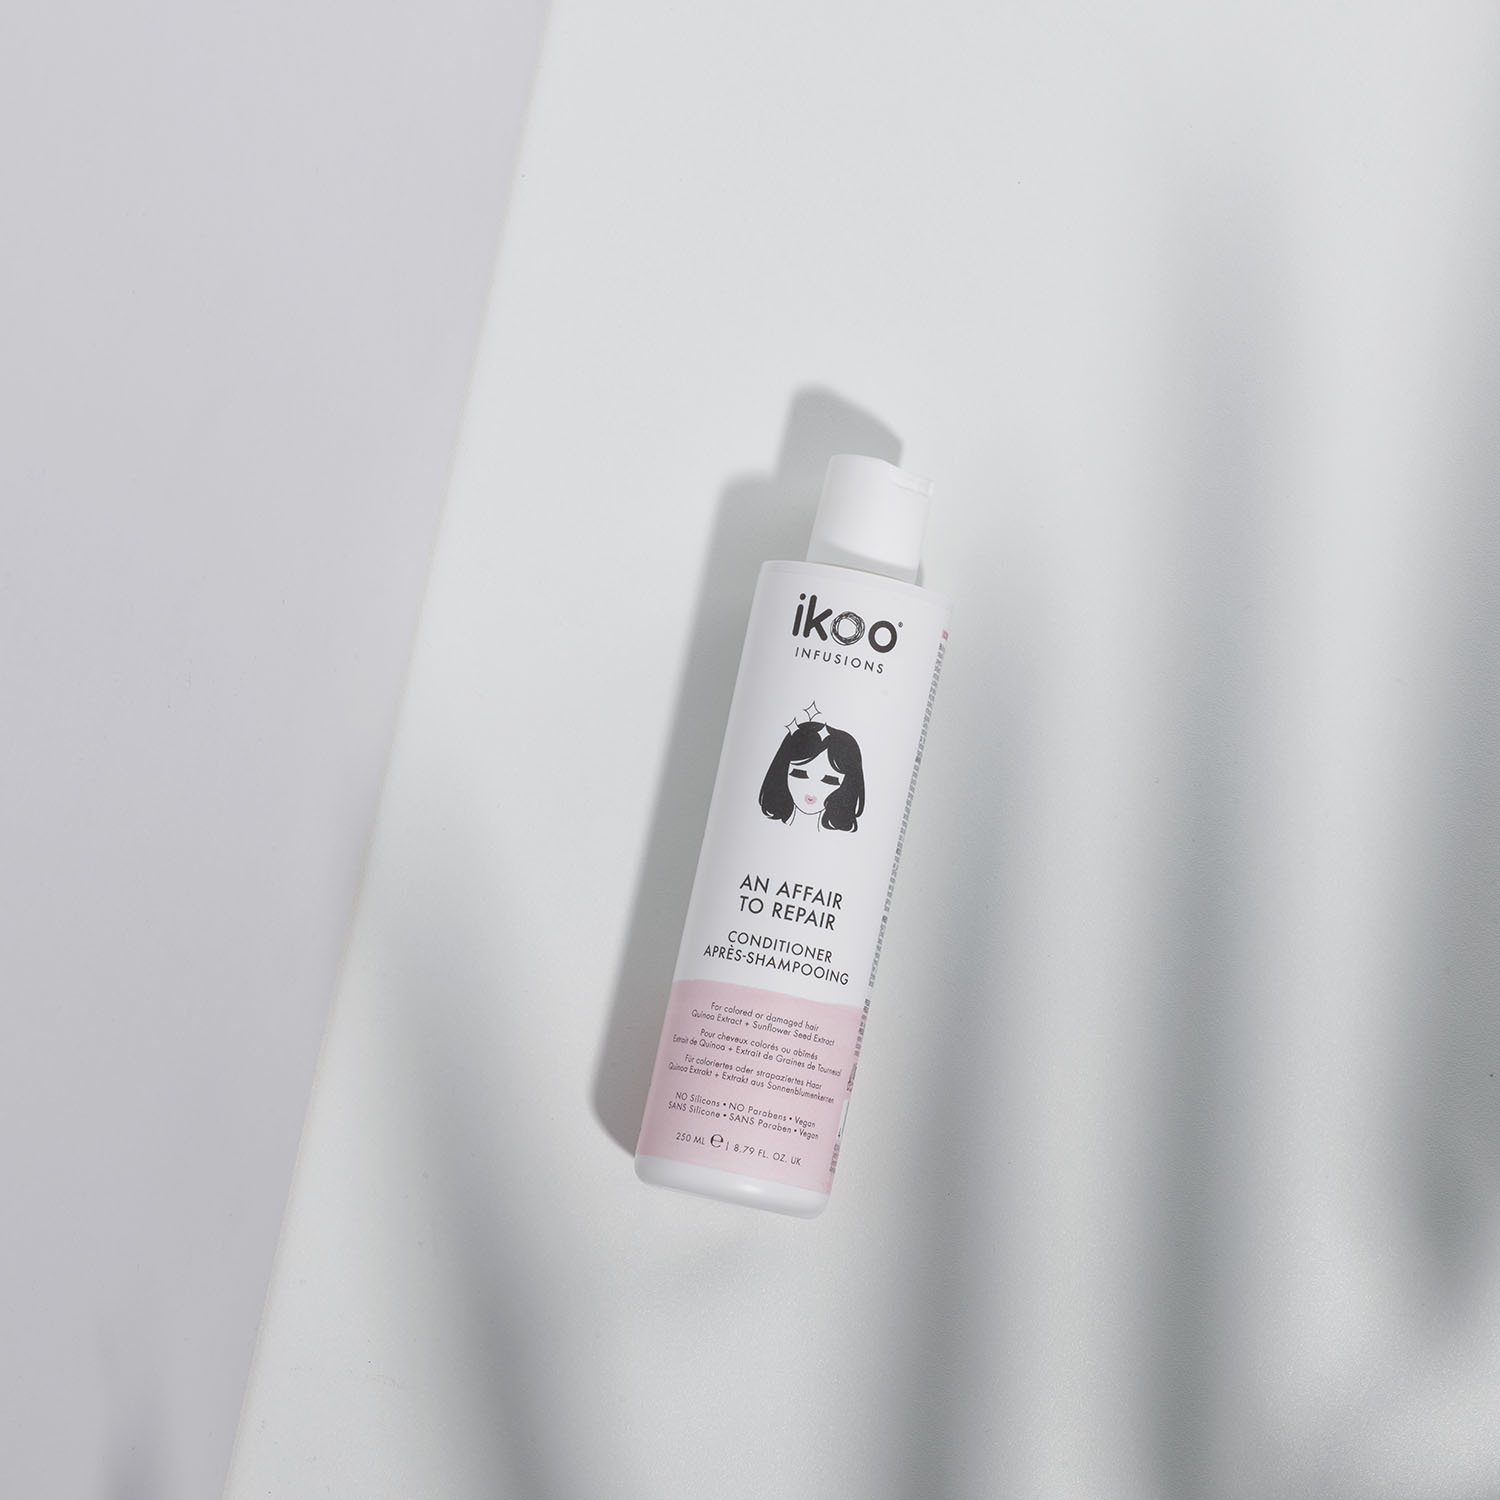 Кондиционер  ikoo An Affair to Repair Conditioner «НУ ВОТ… КАПРЕМОНТ!», 250 мл.